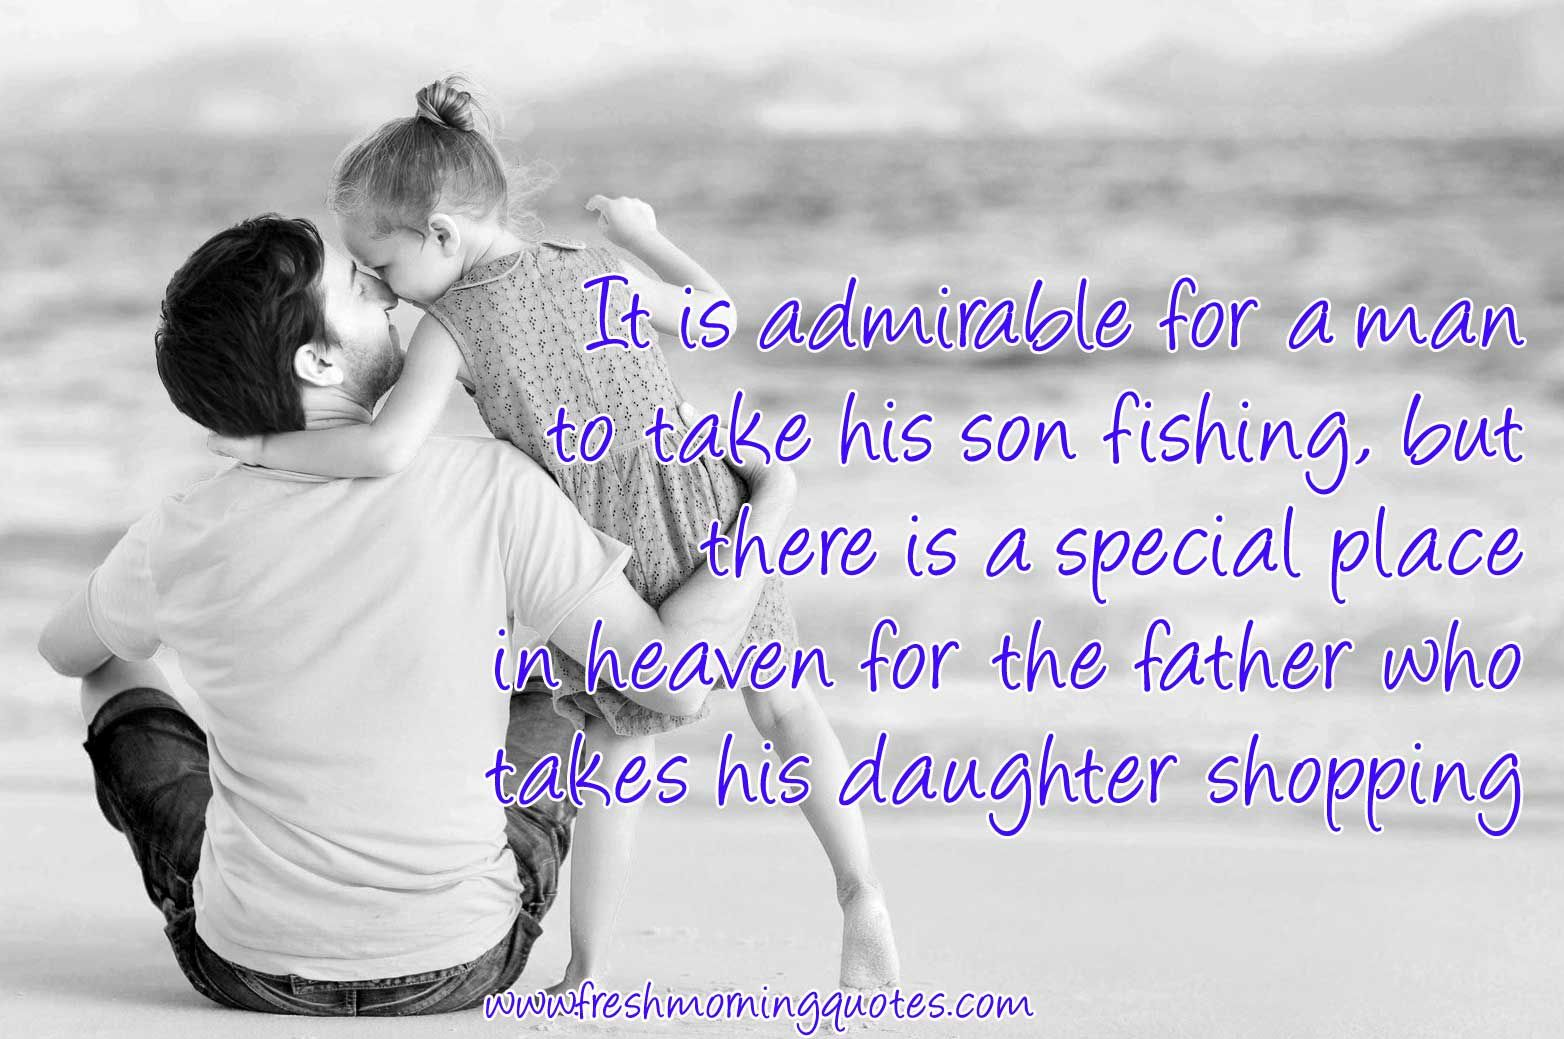 60+ Cute & Sweetest Father Daughter Quotes with Images